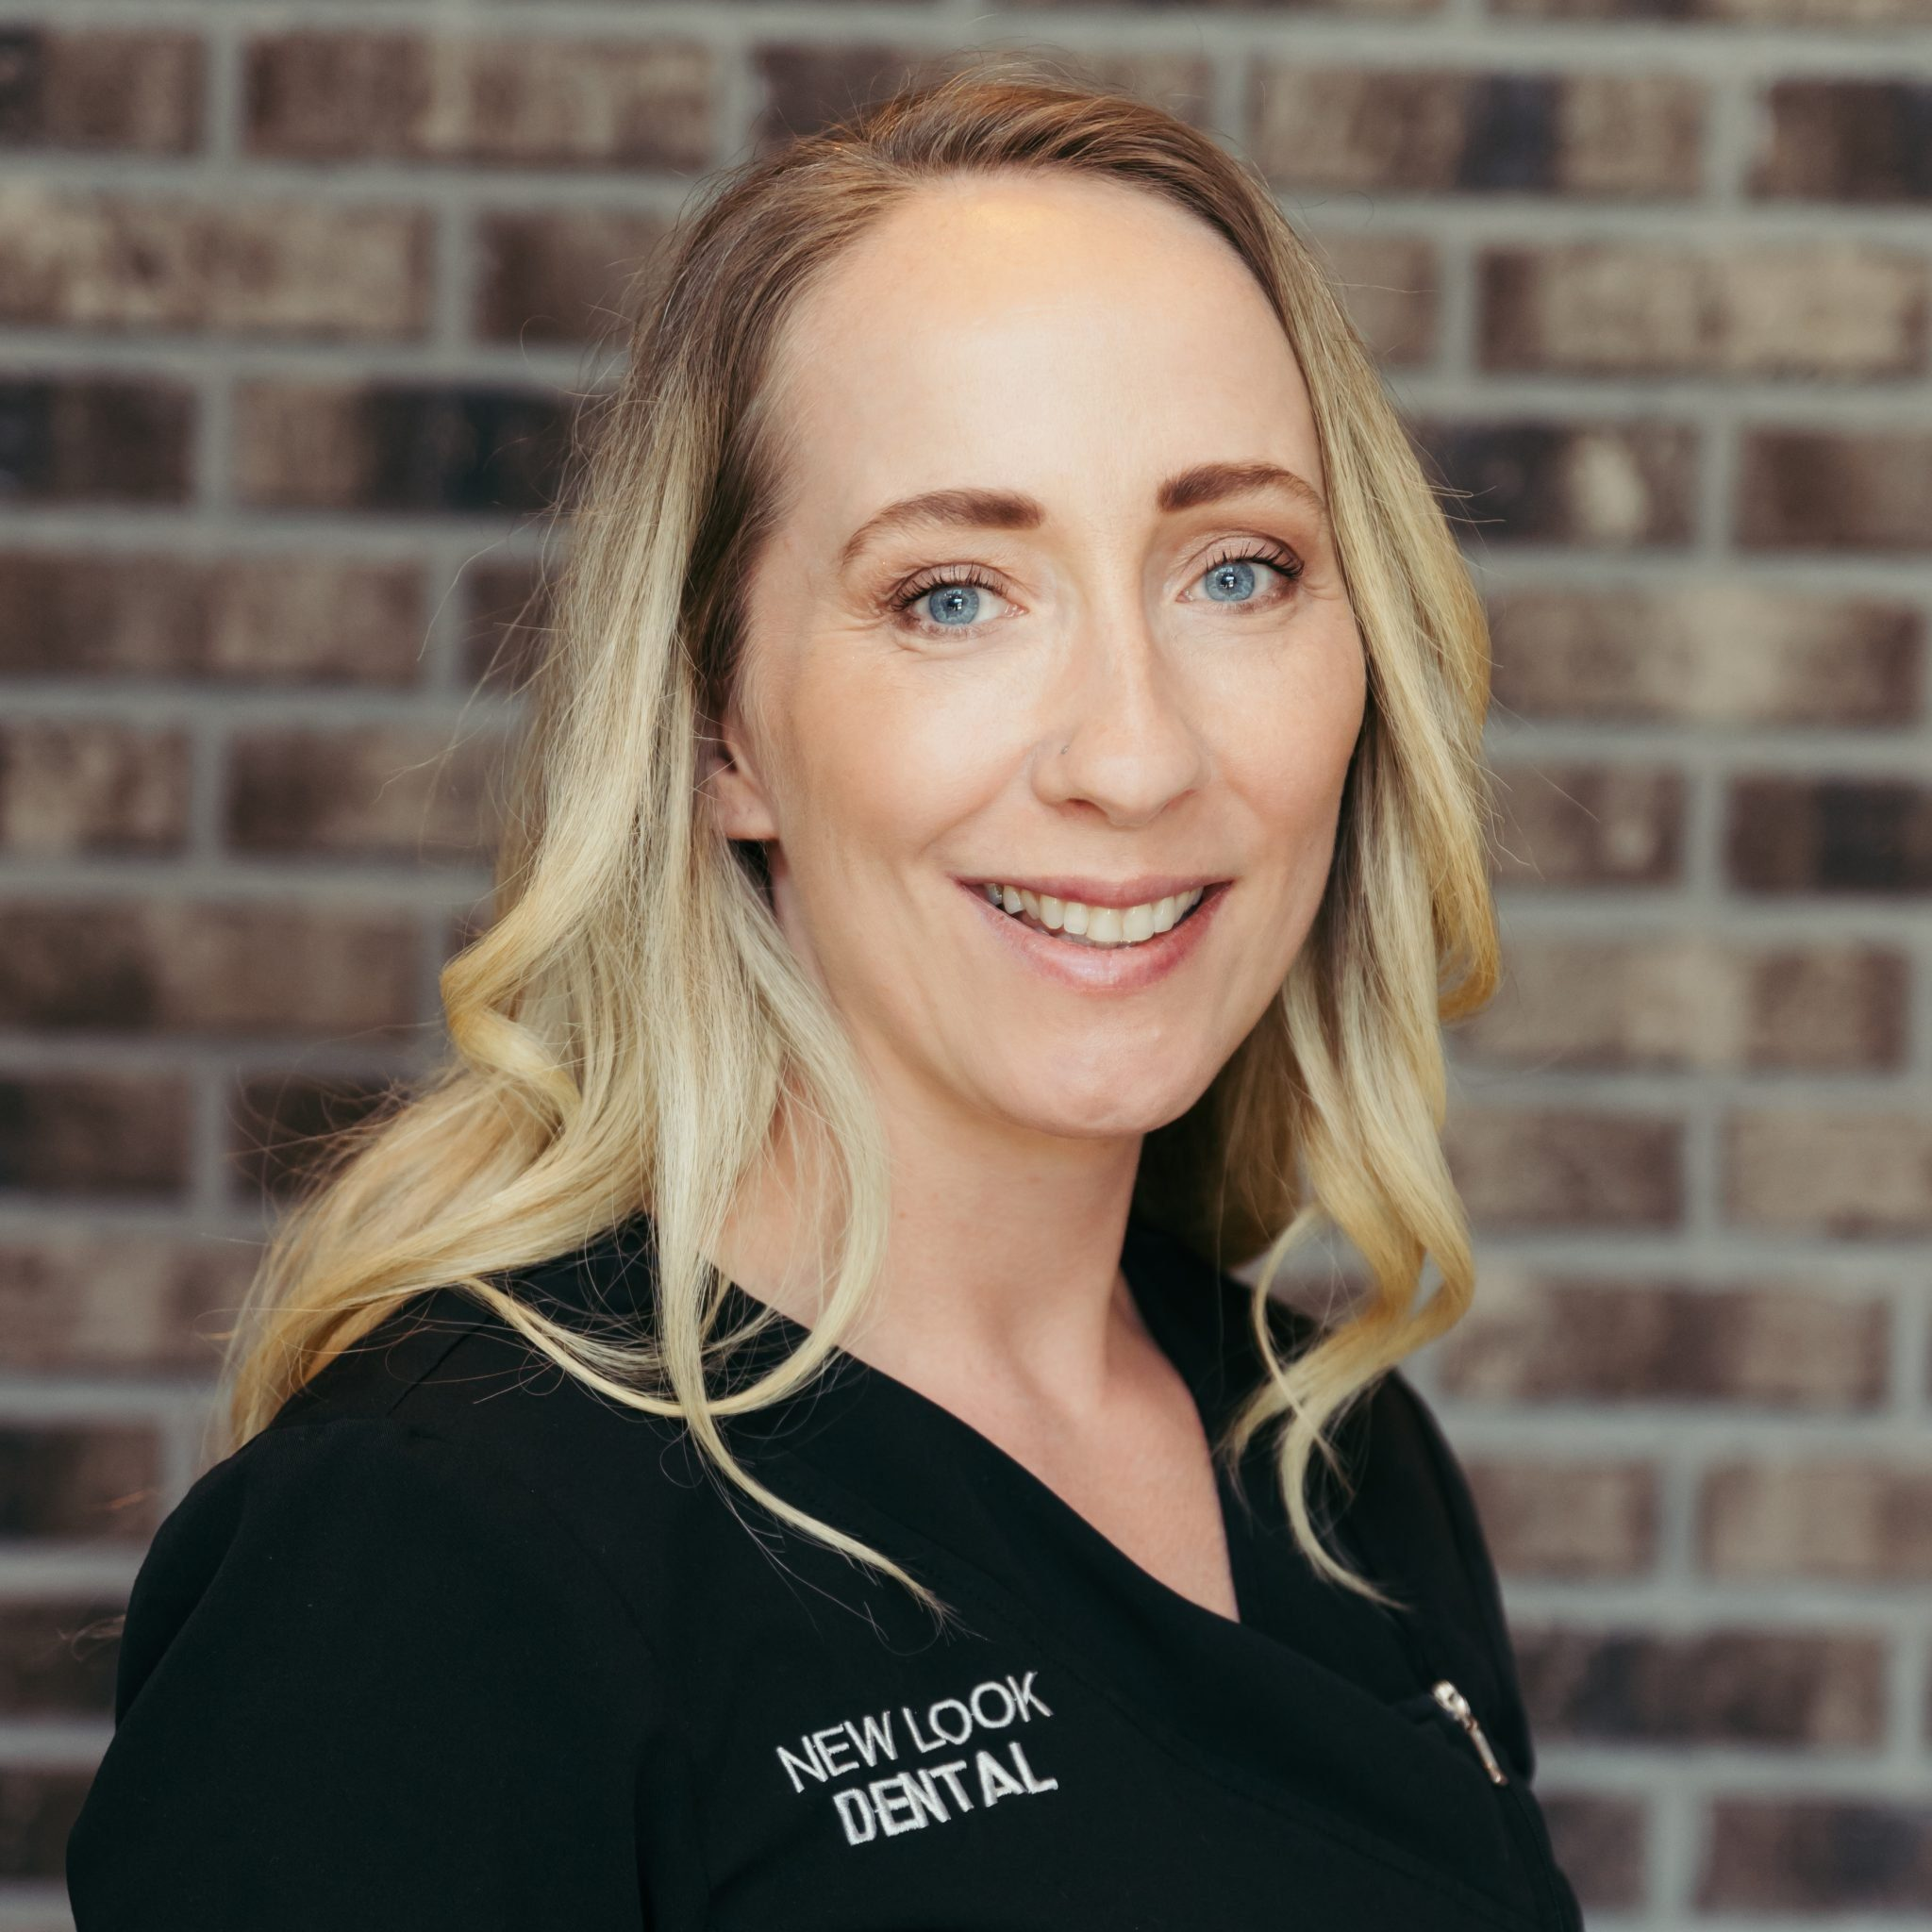 Dentist in West Kelowna | New Look Dental Team Tracey